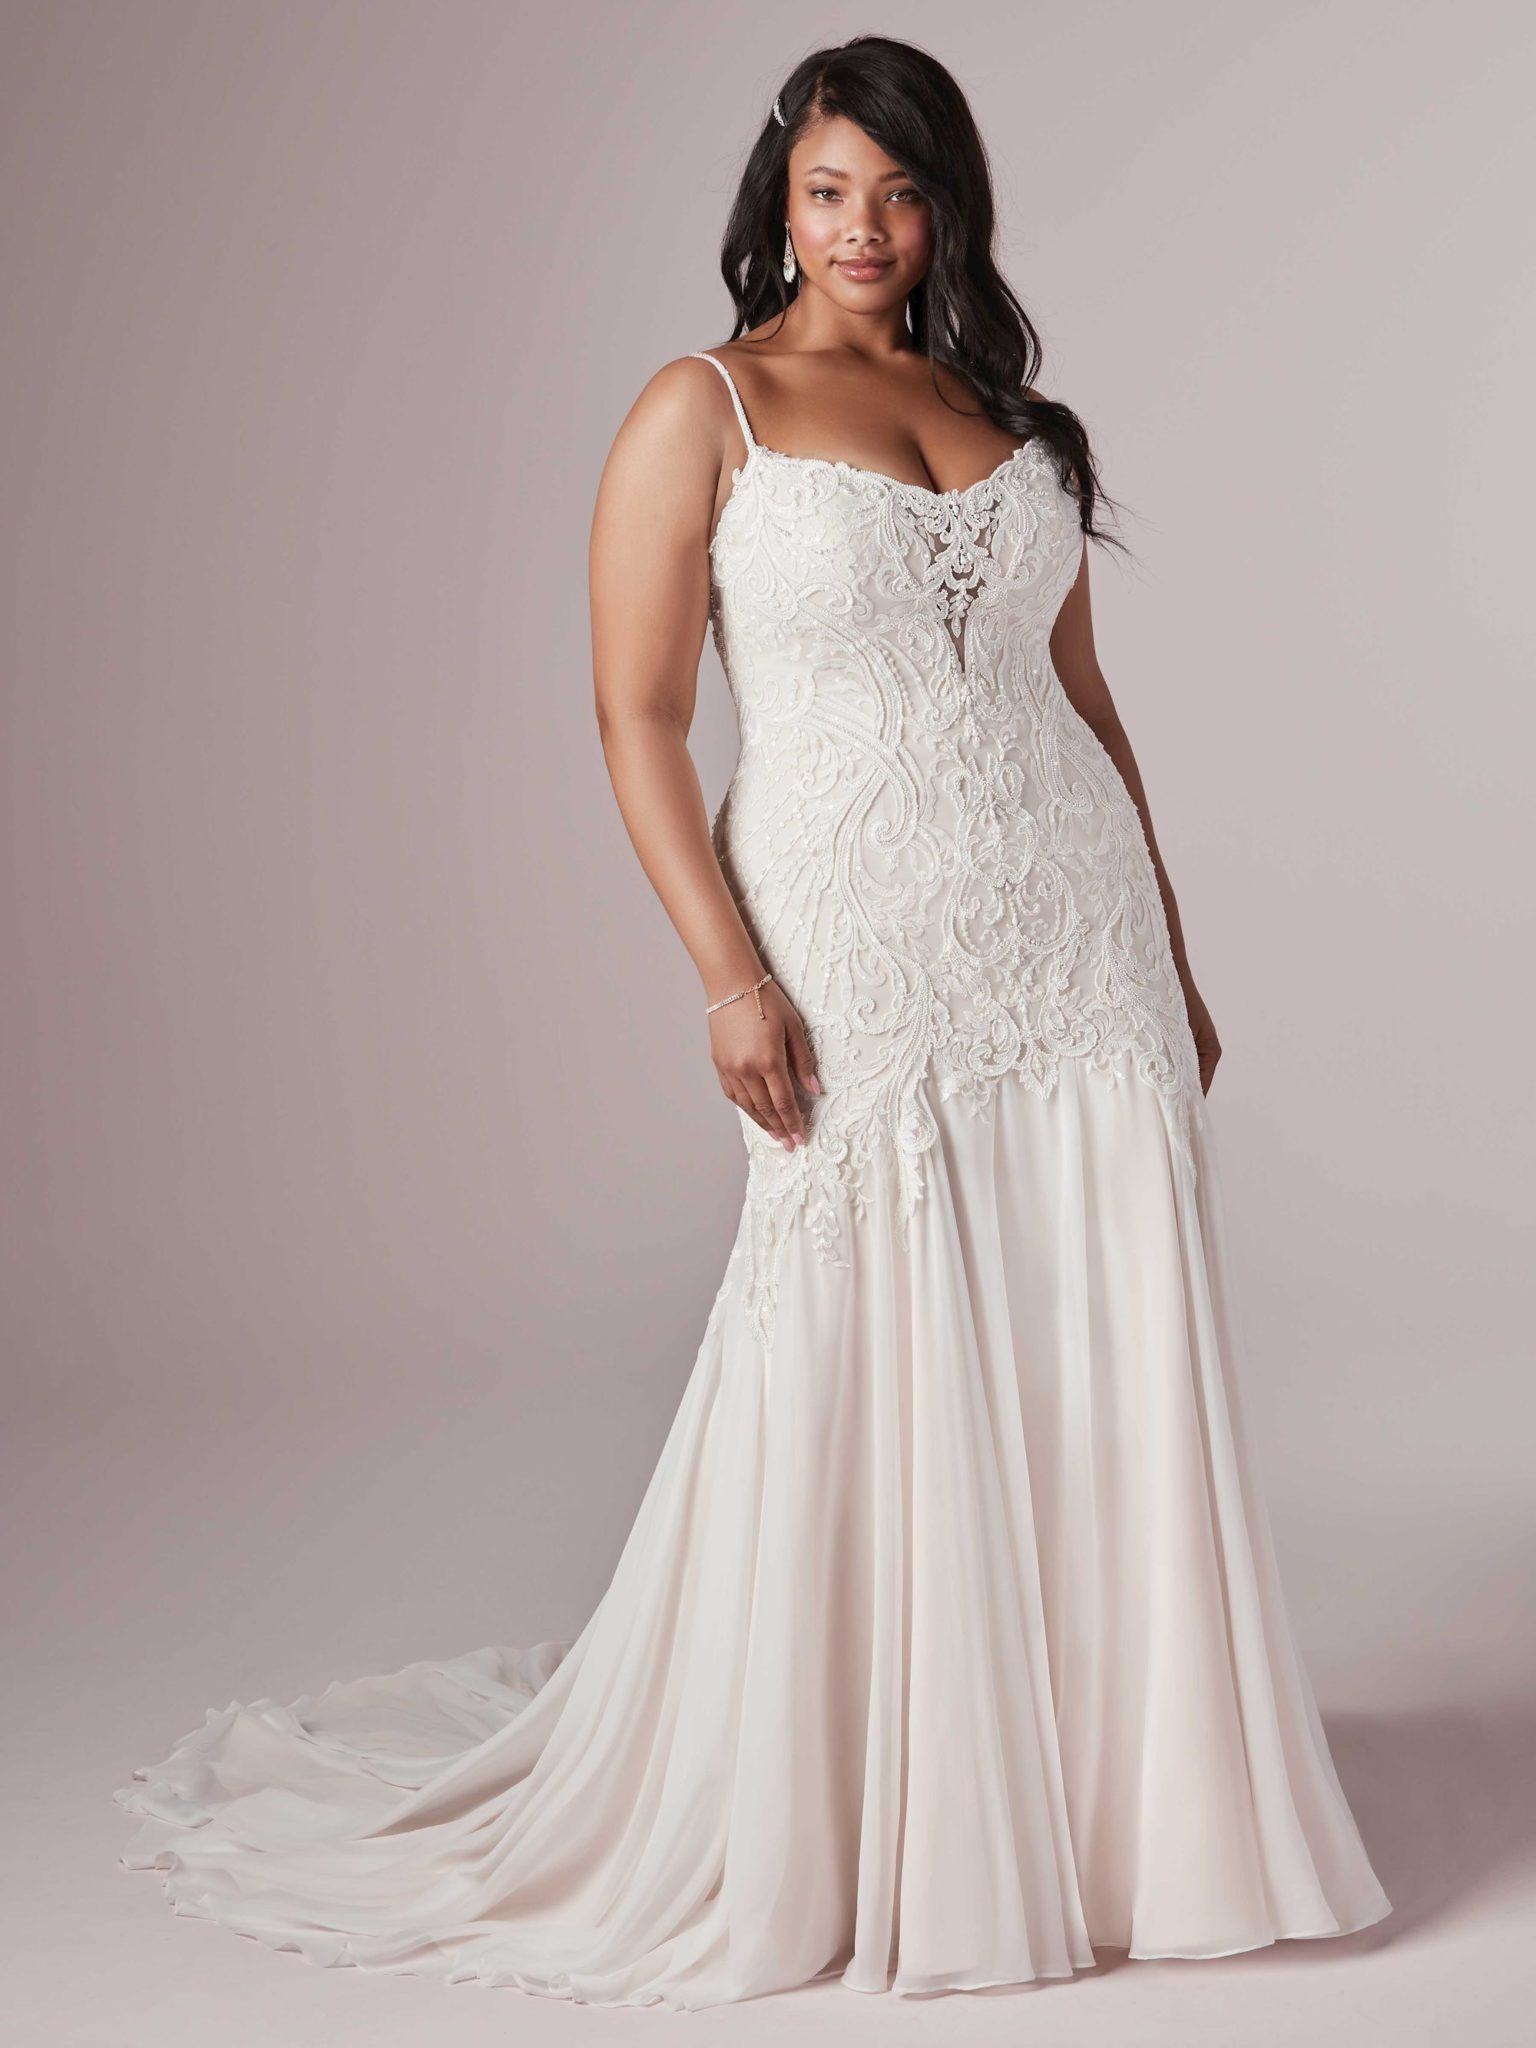 A woman wears the Corrine dress by Maggie Sottero